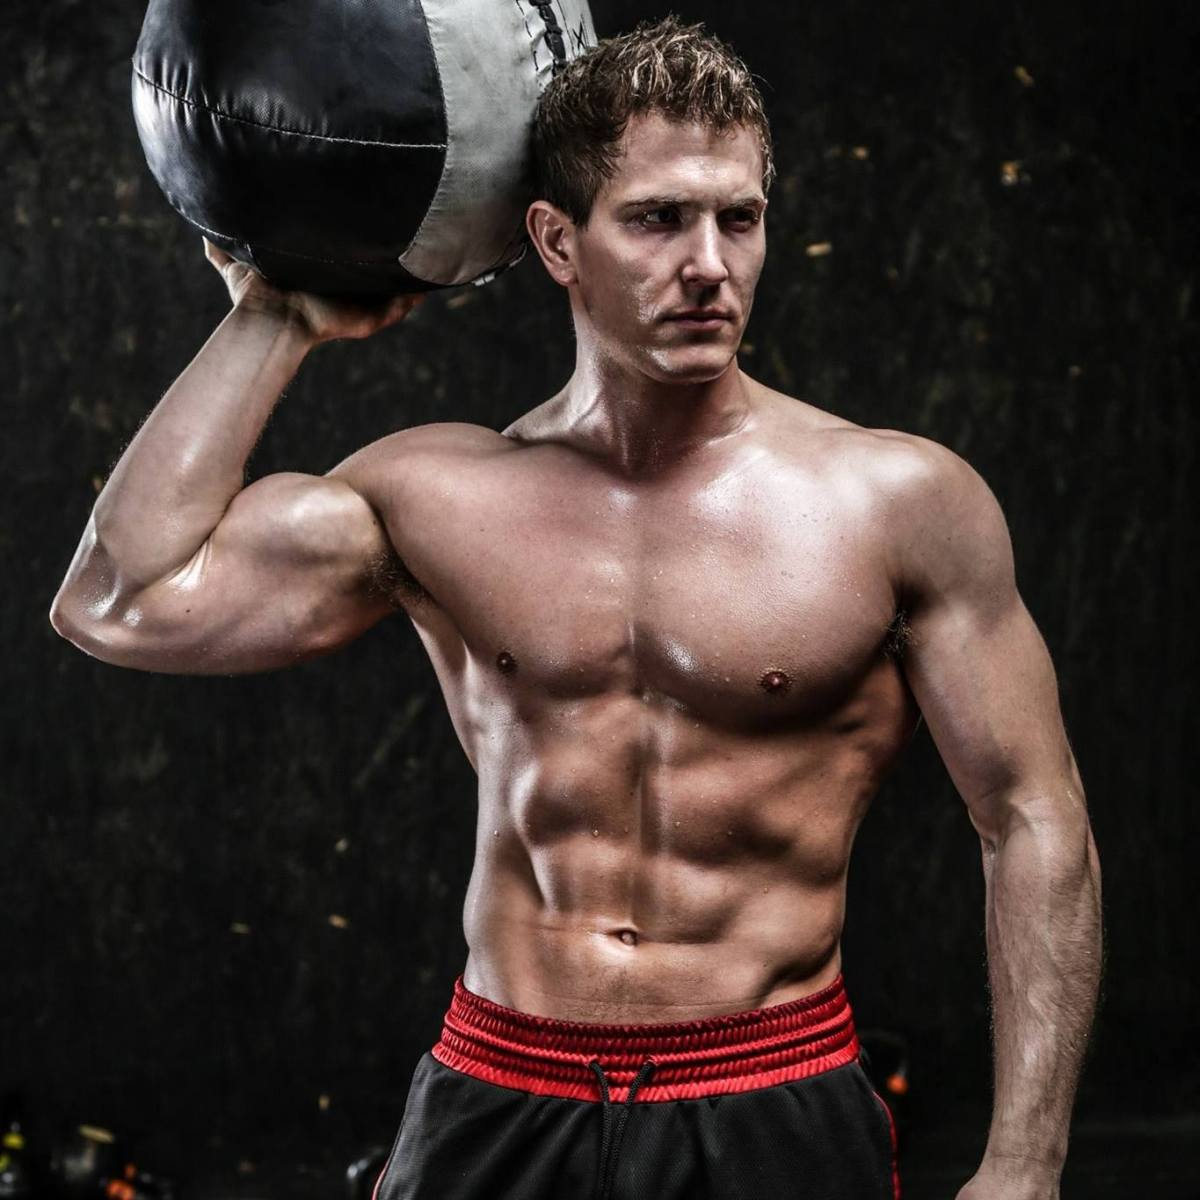 #24 Scott Herman on how to transform your fitness by watching YouTube